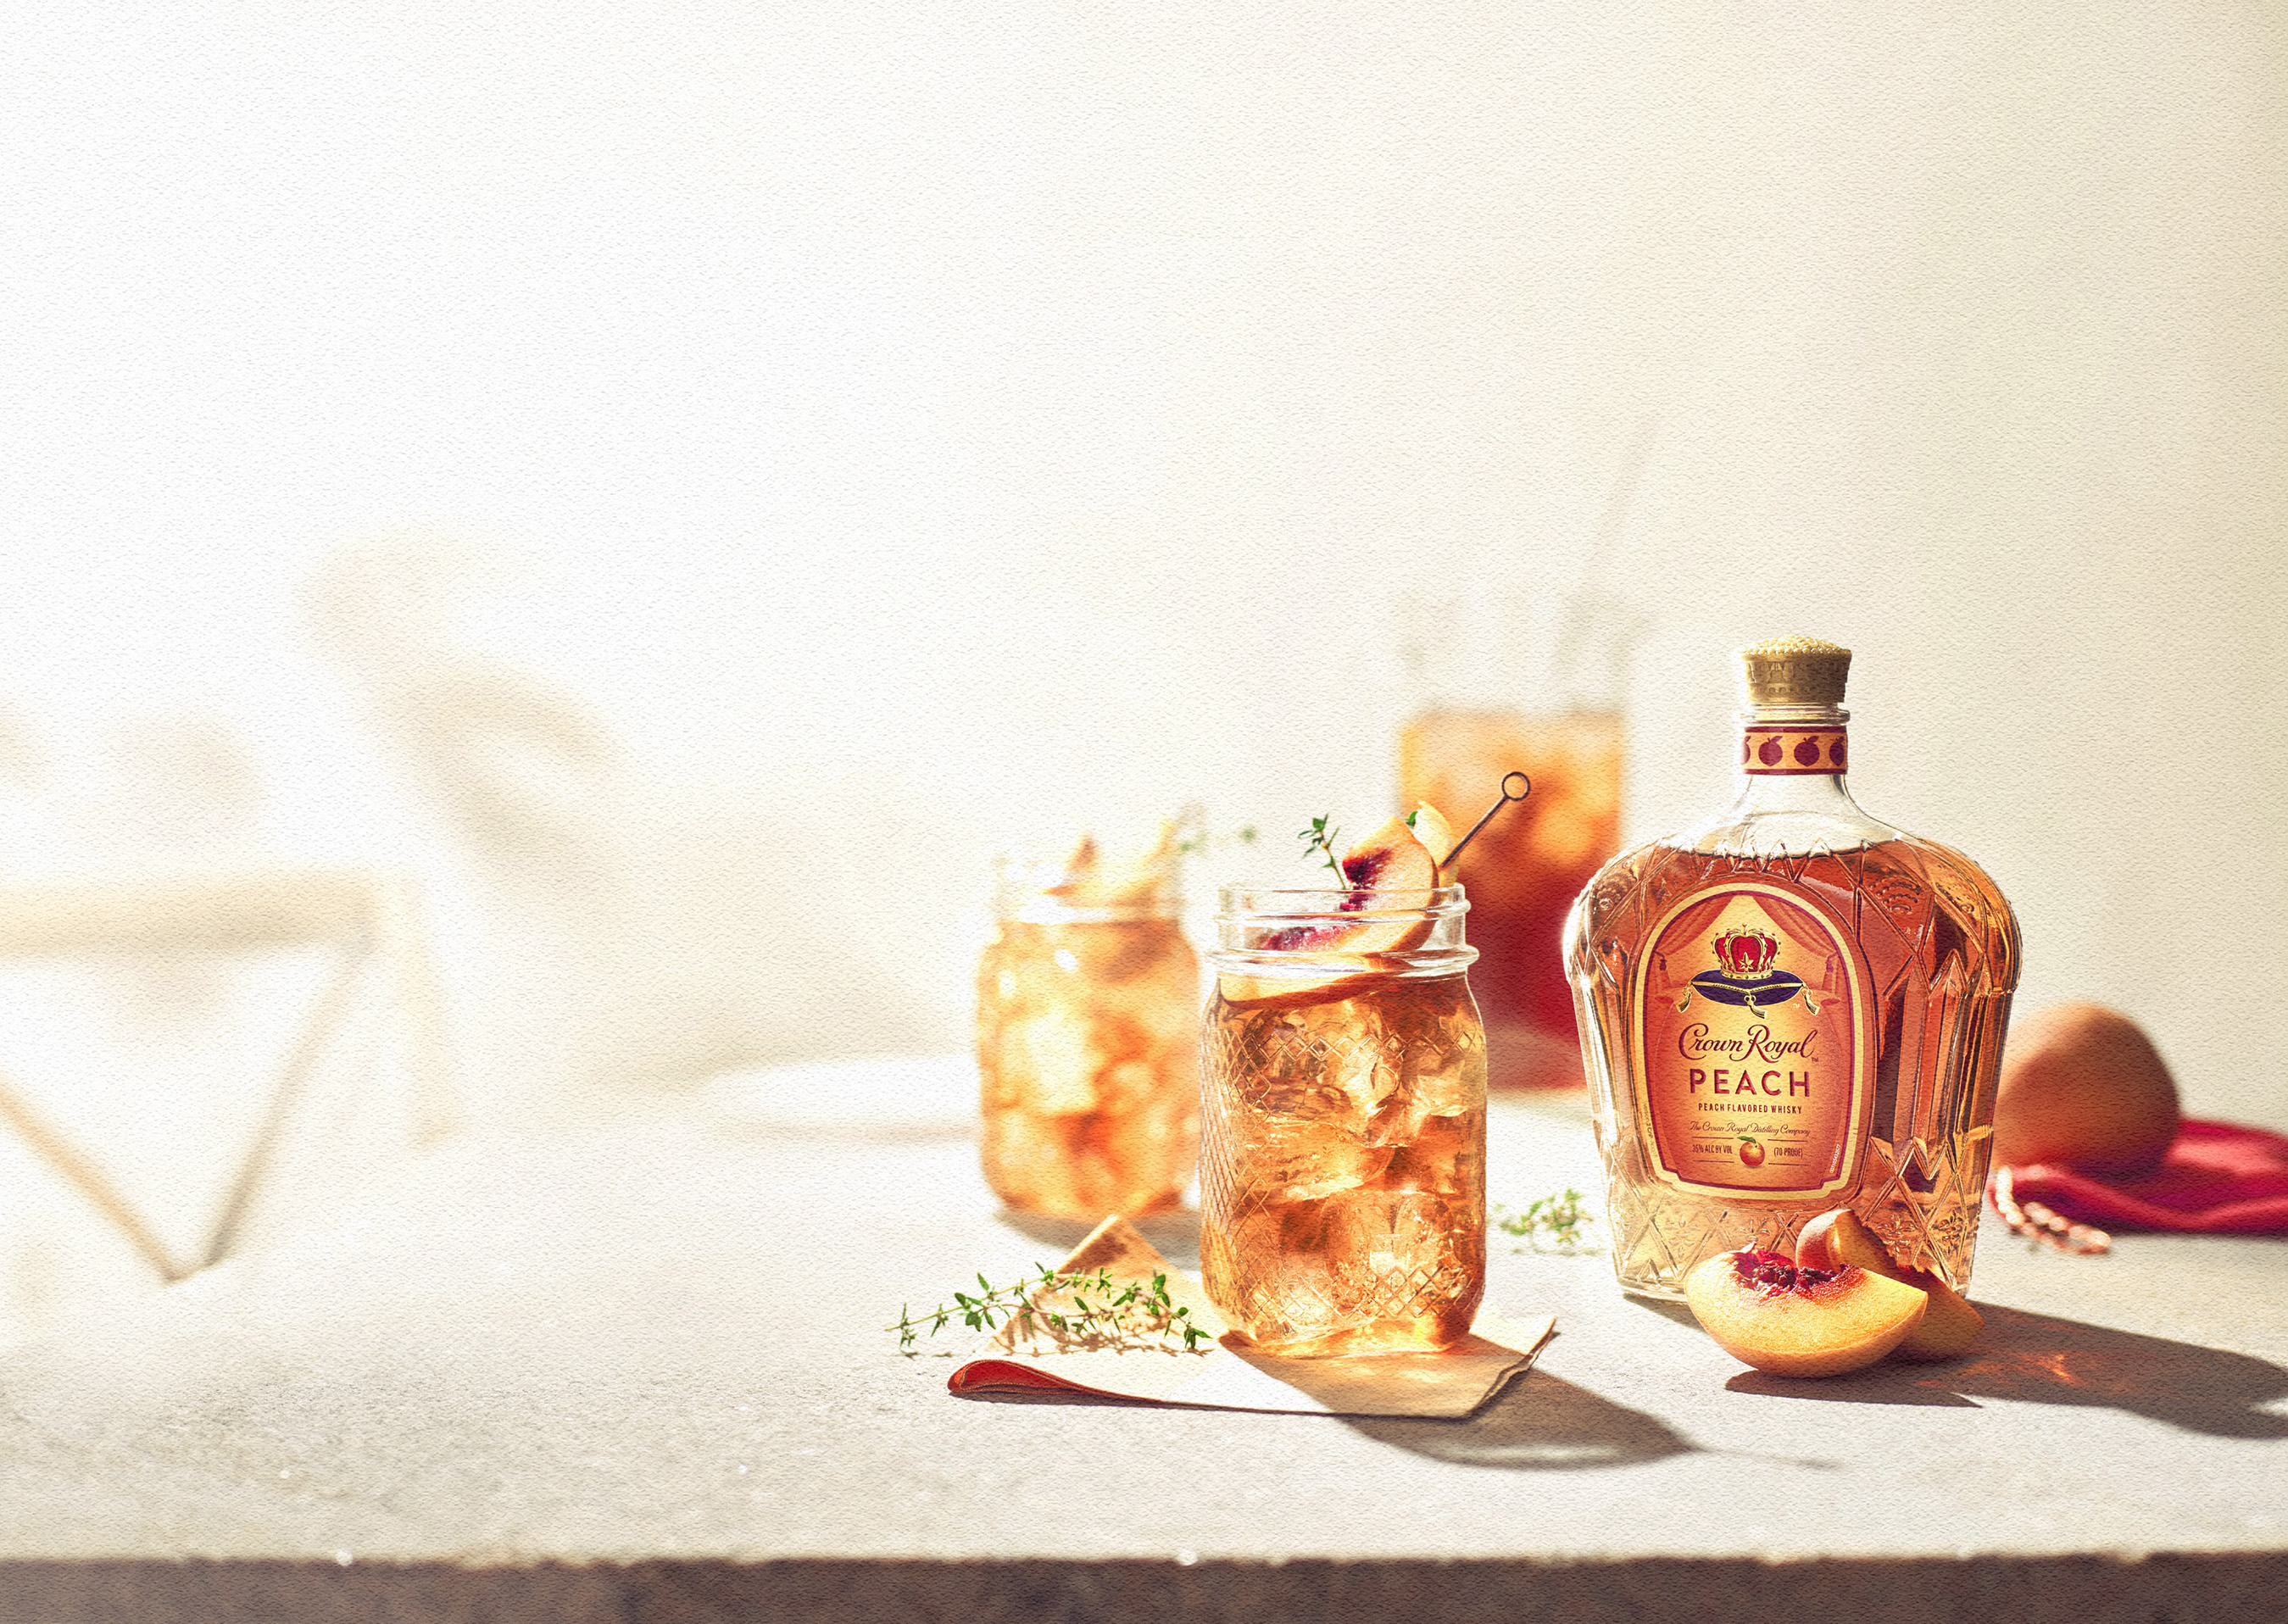 Enjoy a Royal Peach Tea this spring and summer to celebrate the launch of Crown Royal Peach.